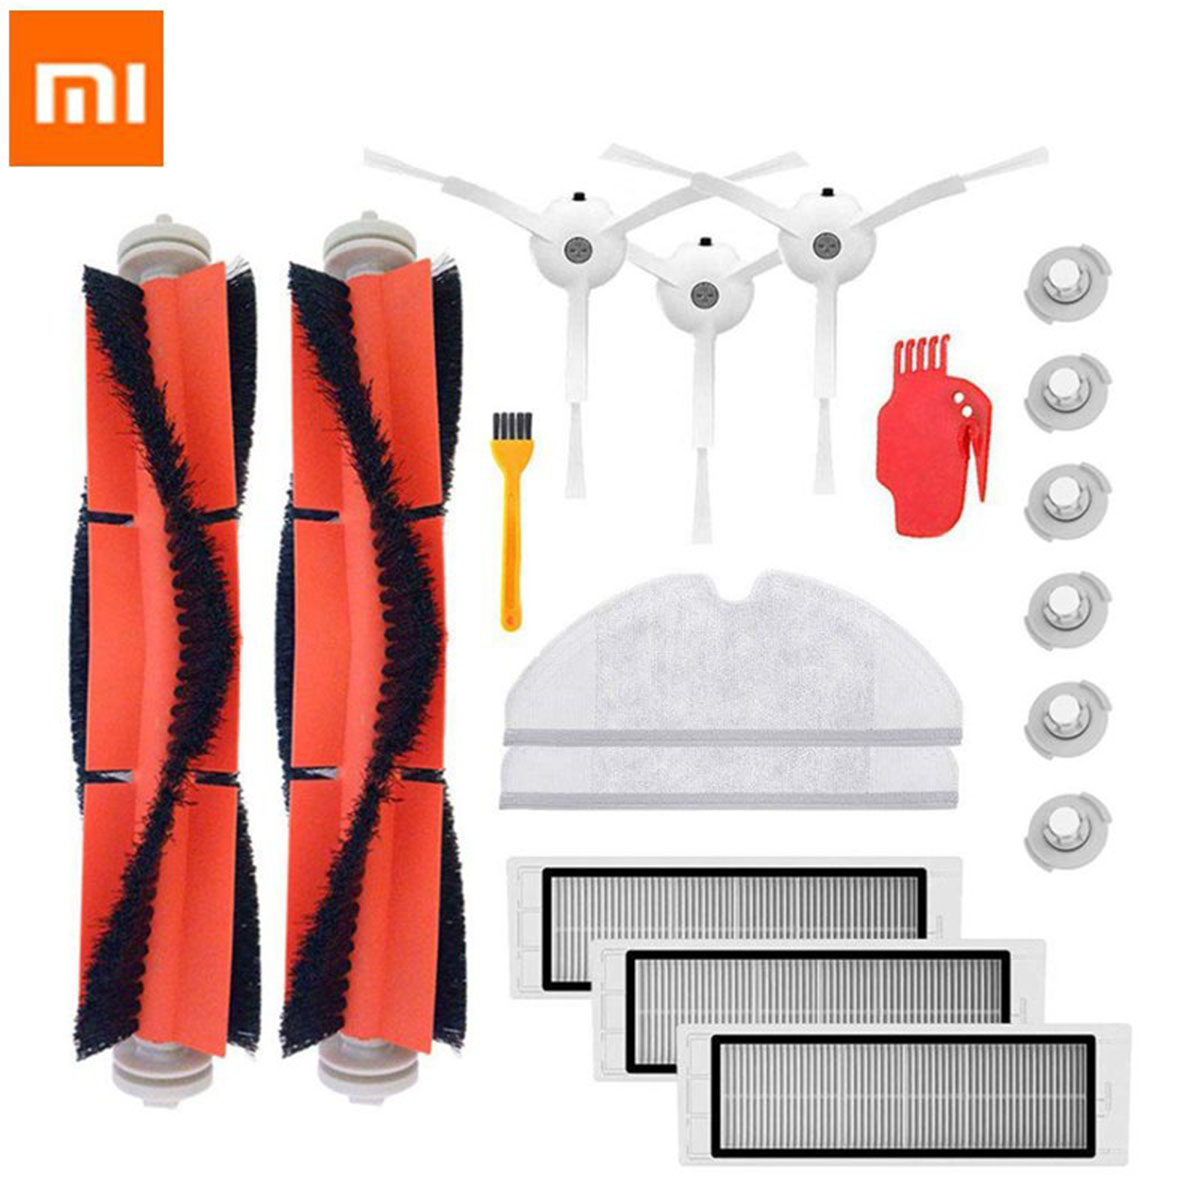 18PCS Mi Roborock Vacuum Cleaner Parts Replacement For Mi Robot Roborock S50 S51 Roborock 2 Vacuum Cleaner Accessory Kit